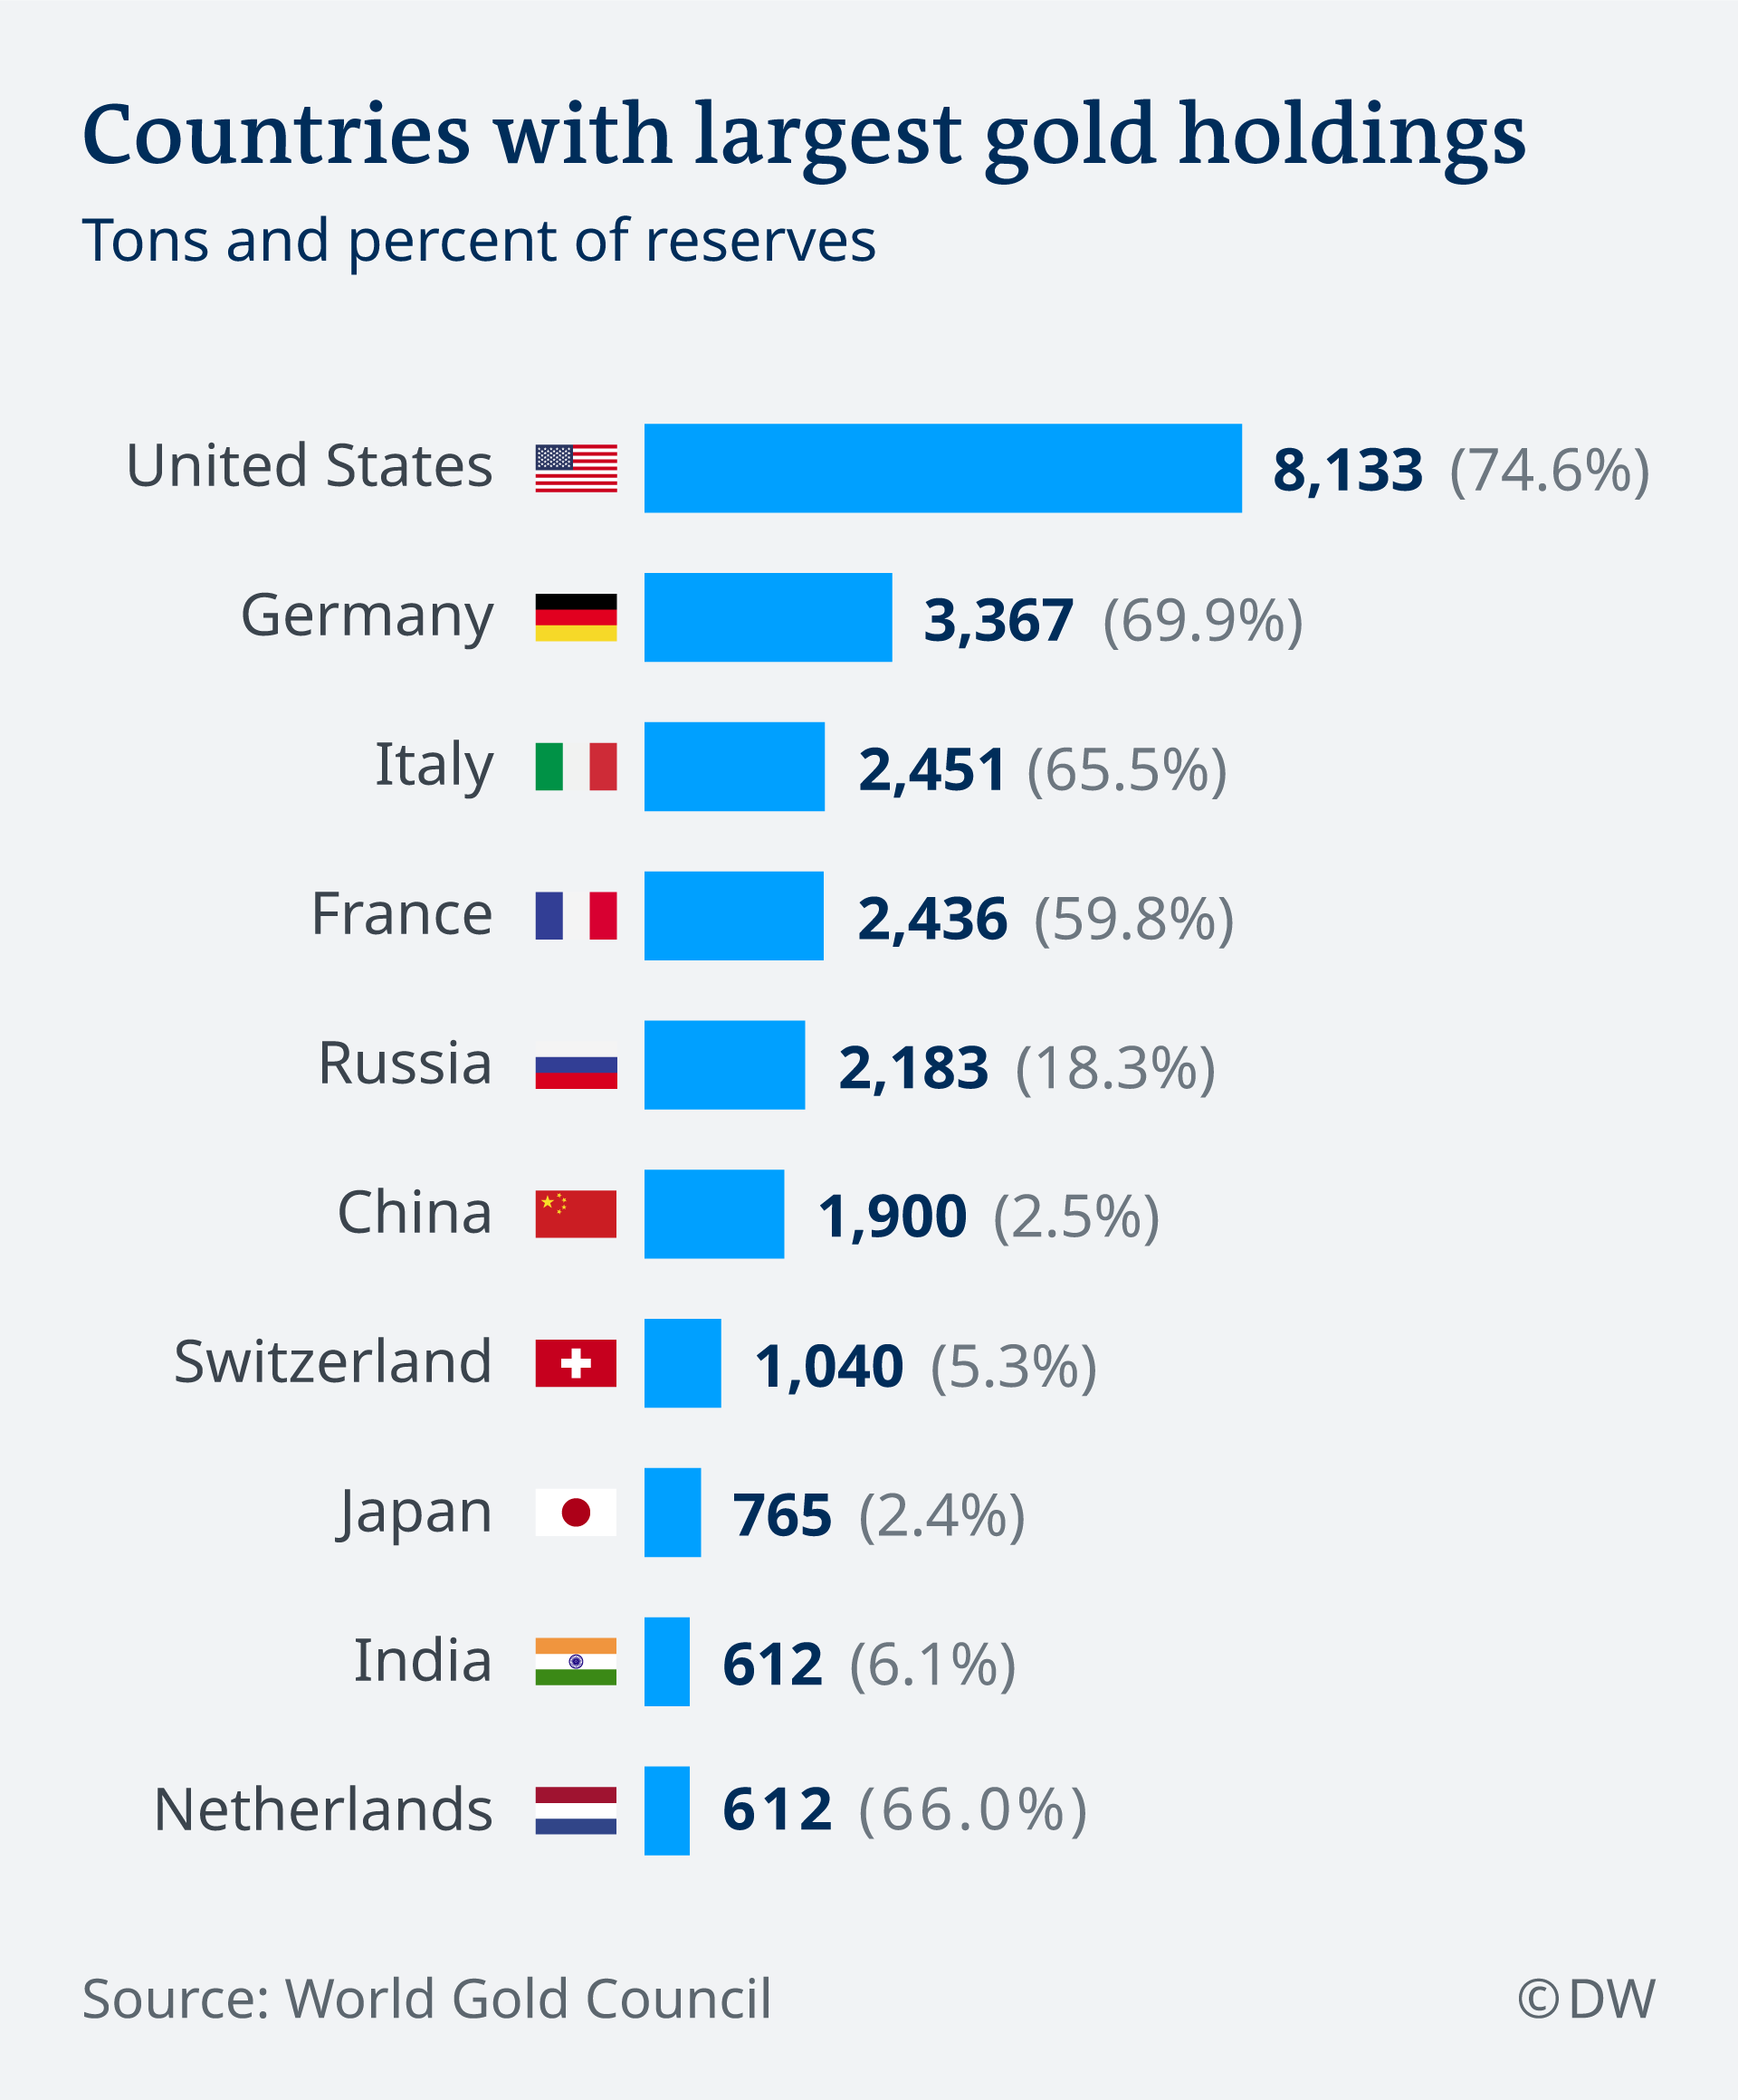 An infographic showing the countries with largest gold holdings